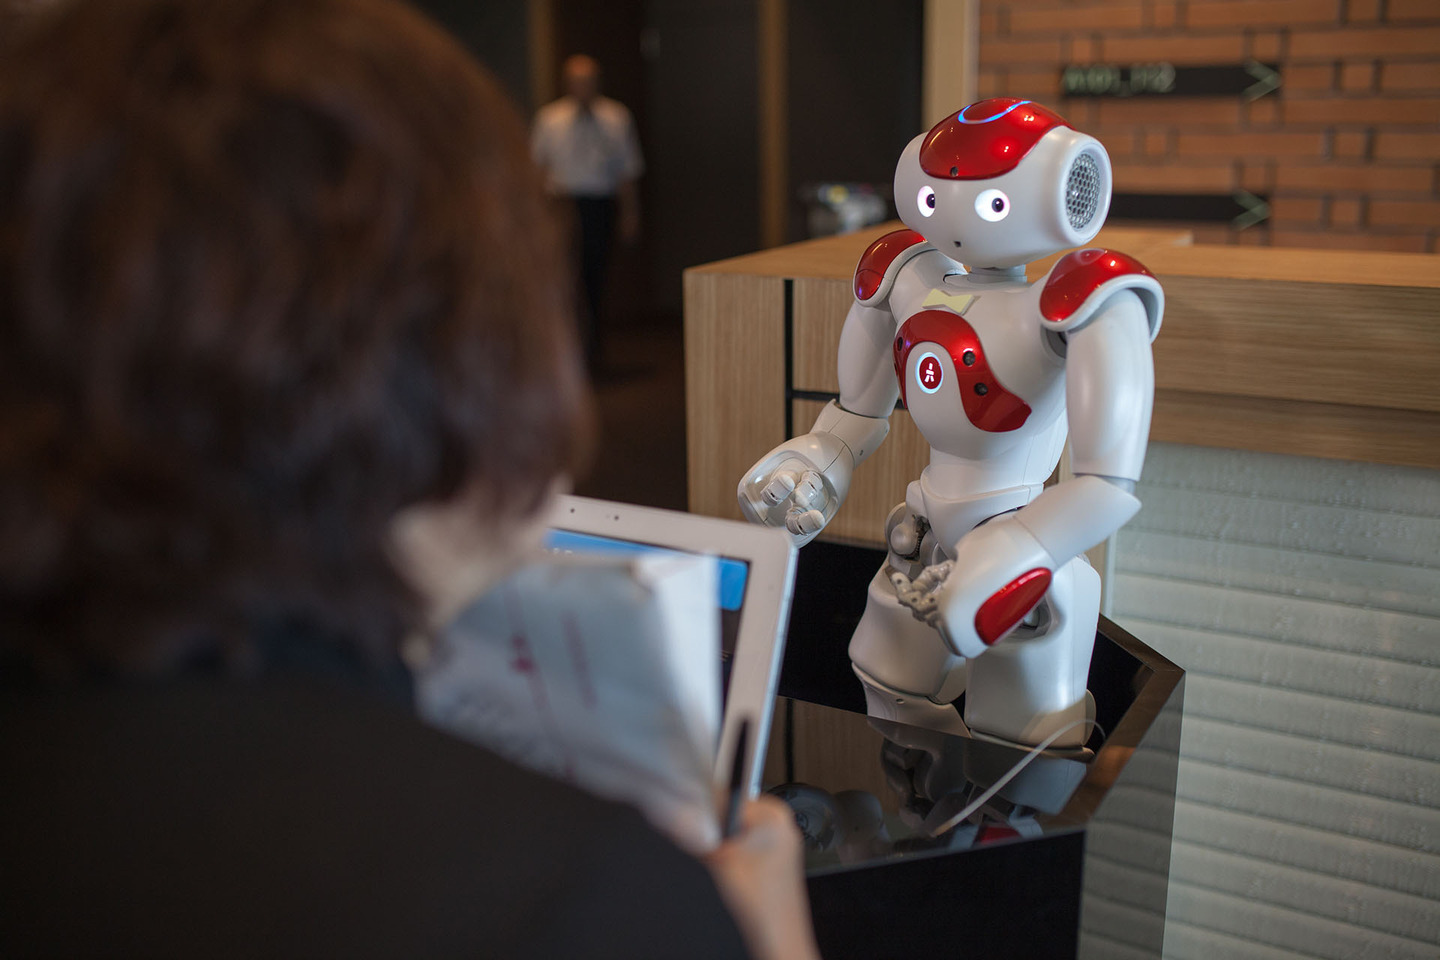 Robots are in charge at Japan's wackiest hotel